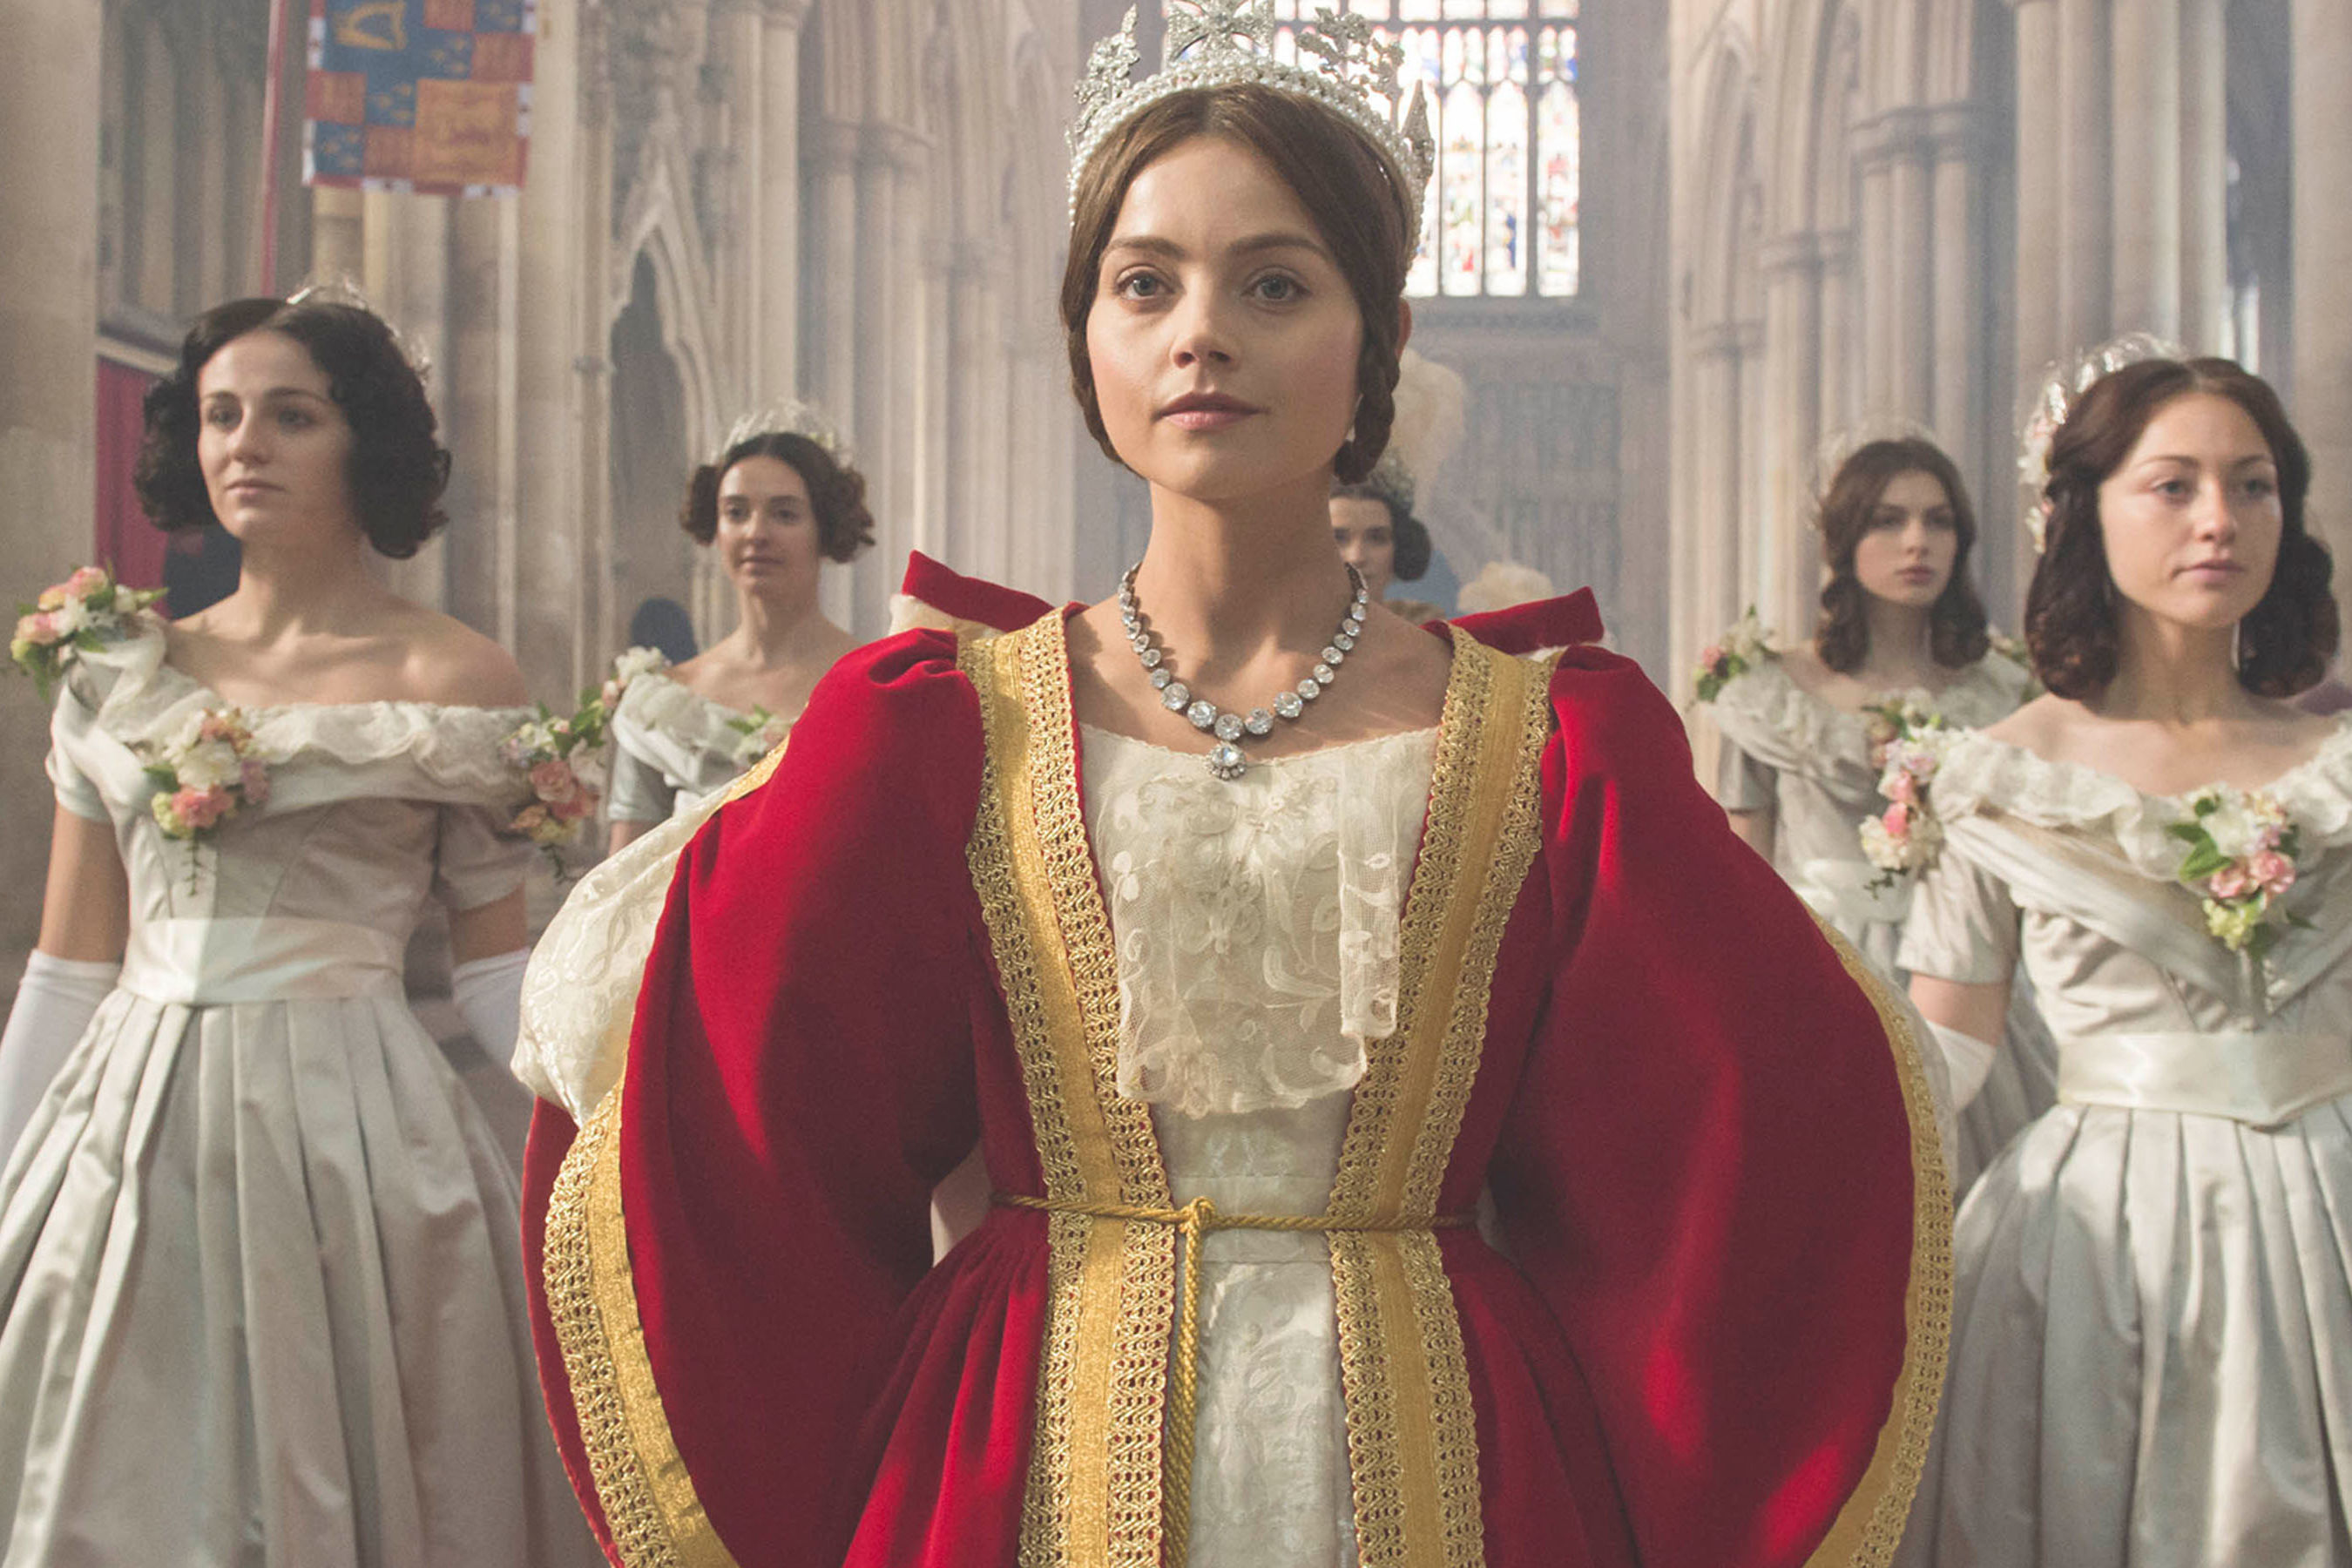 Fans of 'The Crown' Need to Watch This Masterpiece Series About Another Pioneering British Queen